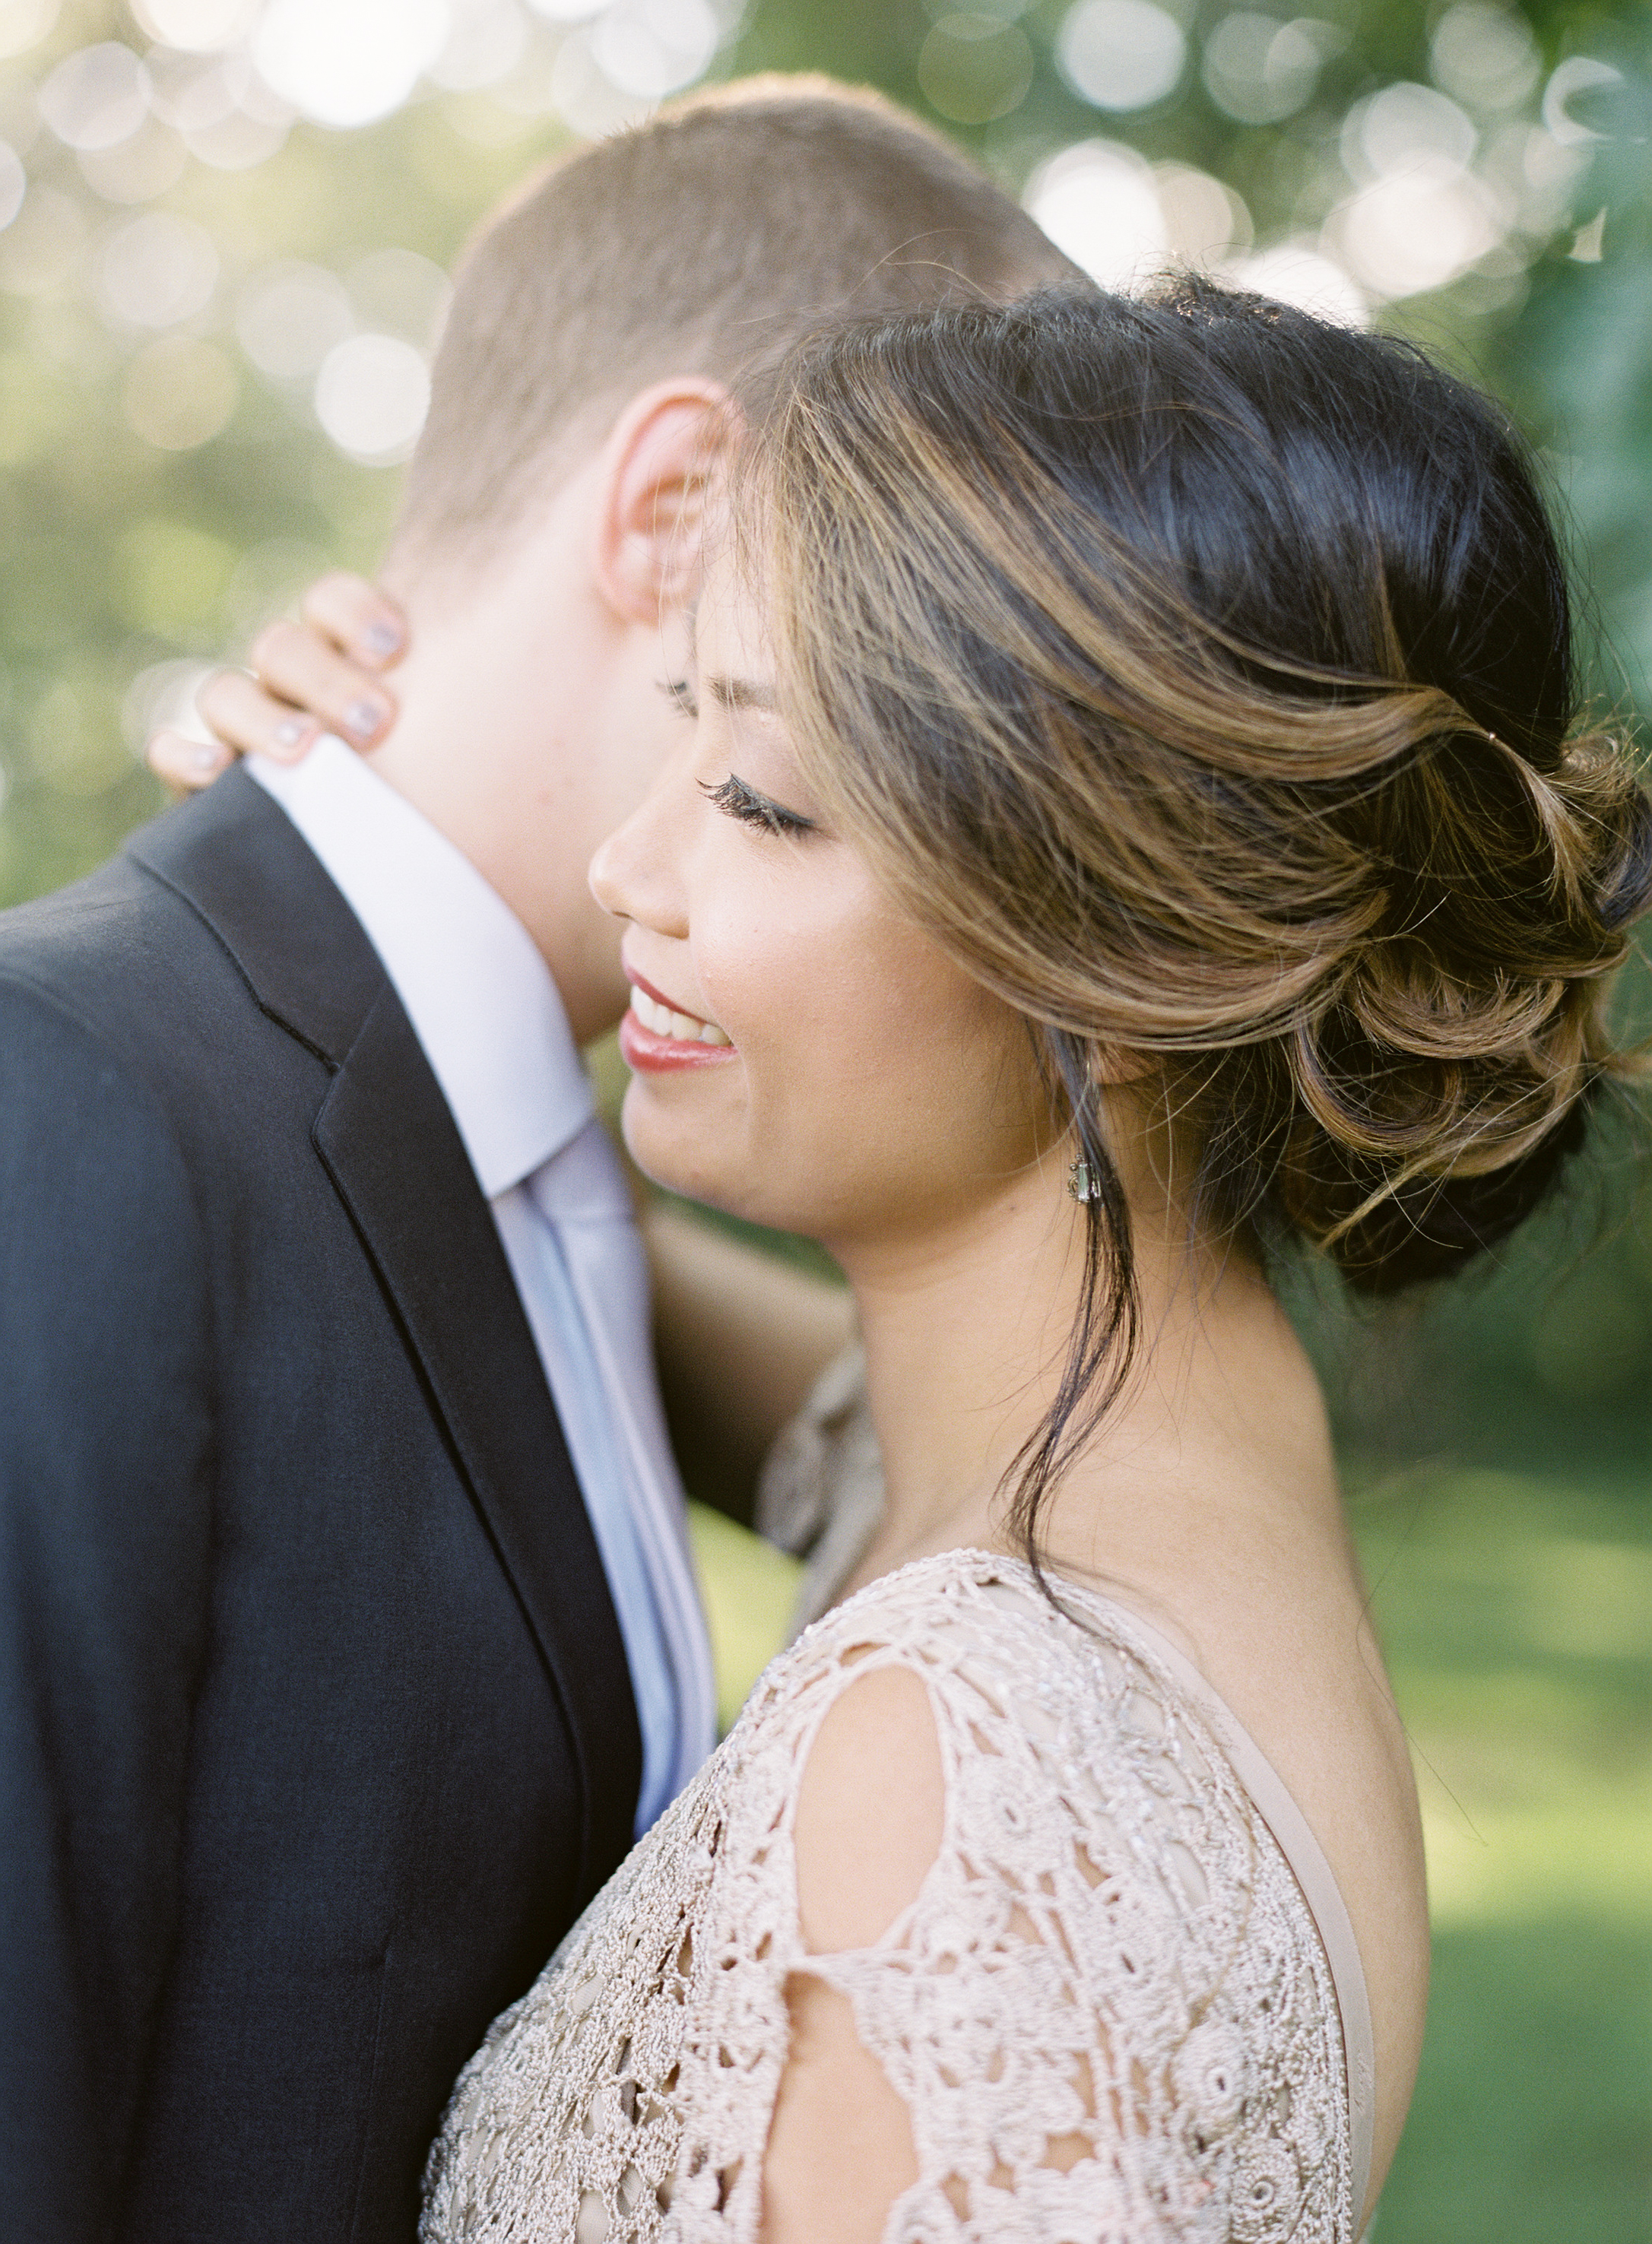 Meghan Mehan Photography - New York City Film Wedding Photographer | New York | San Francisco | Napa | Sonoma | Los Angeles 027.jpg